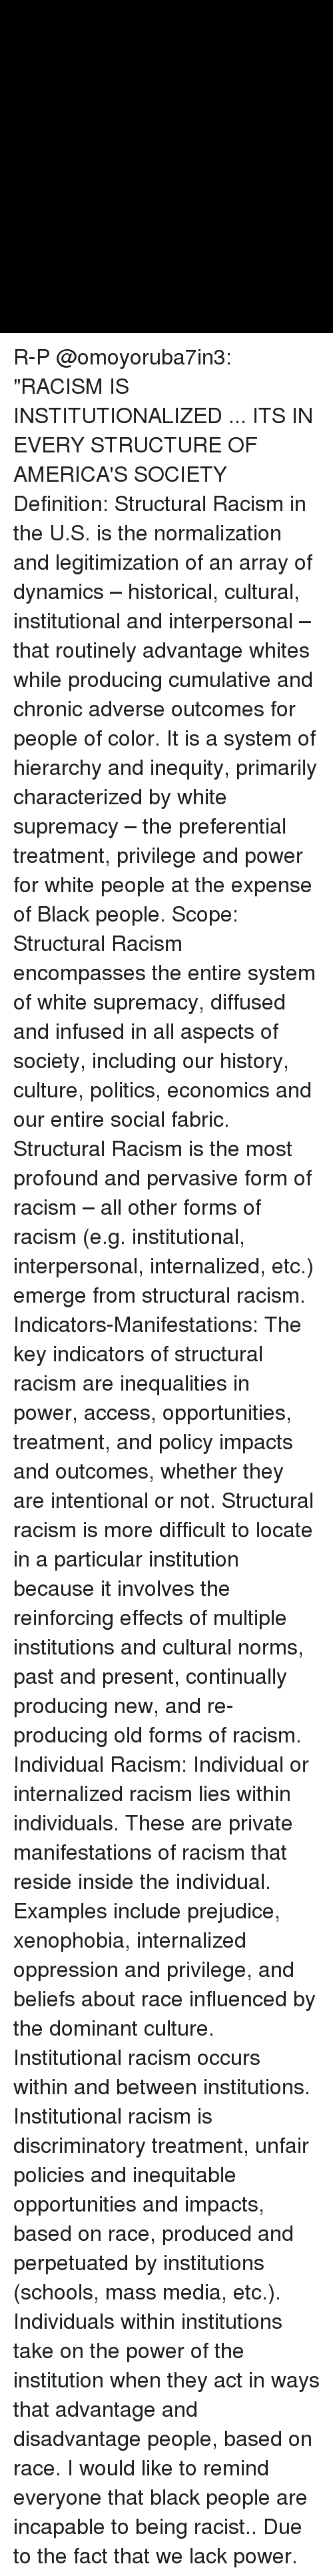 "Memes, Racism, and Access: R-P @omoyoruba7in3: ""RACISM IS INSTITUTIONALIZED ... ITS IN EVERY STRUCTURE OF AMERICA'S SOCIETY Definition: Structural Racism in the U.S. is the normalization and legitimization of an array of dynamics – historical, cultural, institutional and interpersonal – that routinely advantage whites while producing cumulative and chronic adverse outcomes for people of color. It is a system of hierarchy and inequity, primarily characterized by white supremacy – the preferential treatment, privilege and power for white people at the expense of Black people. Scope: Structural Racism encompasses the entire system of white supremacy, diffused and infused in all aspects of society, including our history, culture, politics, economics and our entire social fabric. Structural Racism is the most profound and pervasive form of racism – all other forms of racism (e.g. institutional, interpersonal, internalized, etc.) emerge from structural racism. Indicators-Manifestations: The key indicators of structural racism are inequalities in power, access, opportunities, treatment, and policy impacts and outcomes, whether they are intentional or not. Structural racism is more difficult to locate in a particular institution because it involves the reinforcing effects of multiple institutions and cultural norms, past and present, continually producing new, and re-producing old forms of racism. Individual Racism: Individual or internalized racism lies within individuals. These are private manifestations of racism that reside inside the individual. Examples include prejudice, xenophobia, internalized oppression and privilege, and beliefs about race influenced by the dominant culture. Institutional racism occurs within and between institutions. Institutional racism is discriminatory treatment, unfair policies and inequitable opportunities and impacts, based on race, produced and perpetuated by institutions (schools, mass media, etc.). Individuals within institutions take on the power of the institution when they act in ways that advantage and disadvantage people, based on race. I would like to remind everyone that black people are incapable to being racist.. Due to the fact that we lack power."